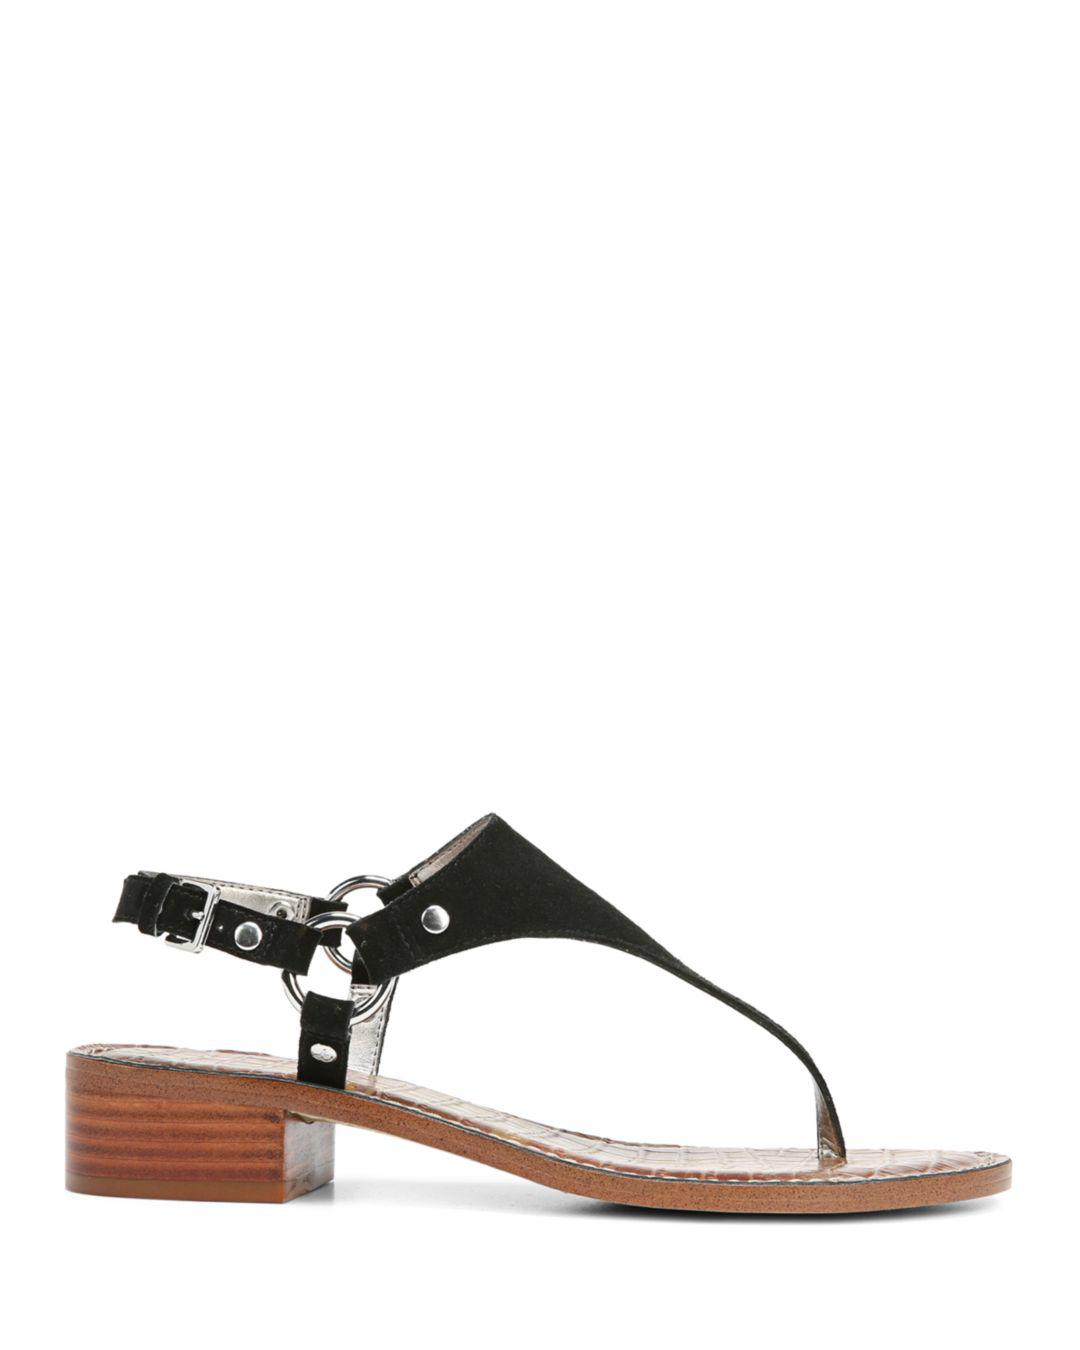 3687195a7b73 Lyst - Sam Edelman Women s Jude Suede Thong Sandals in Black